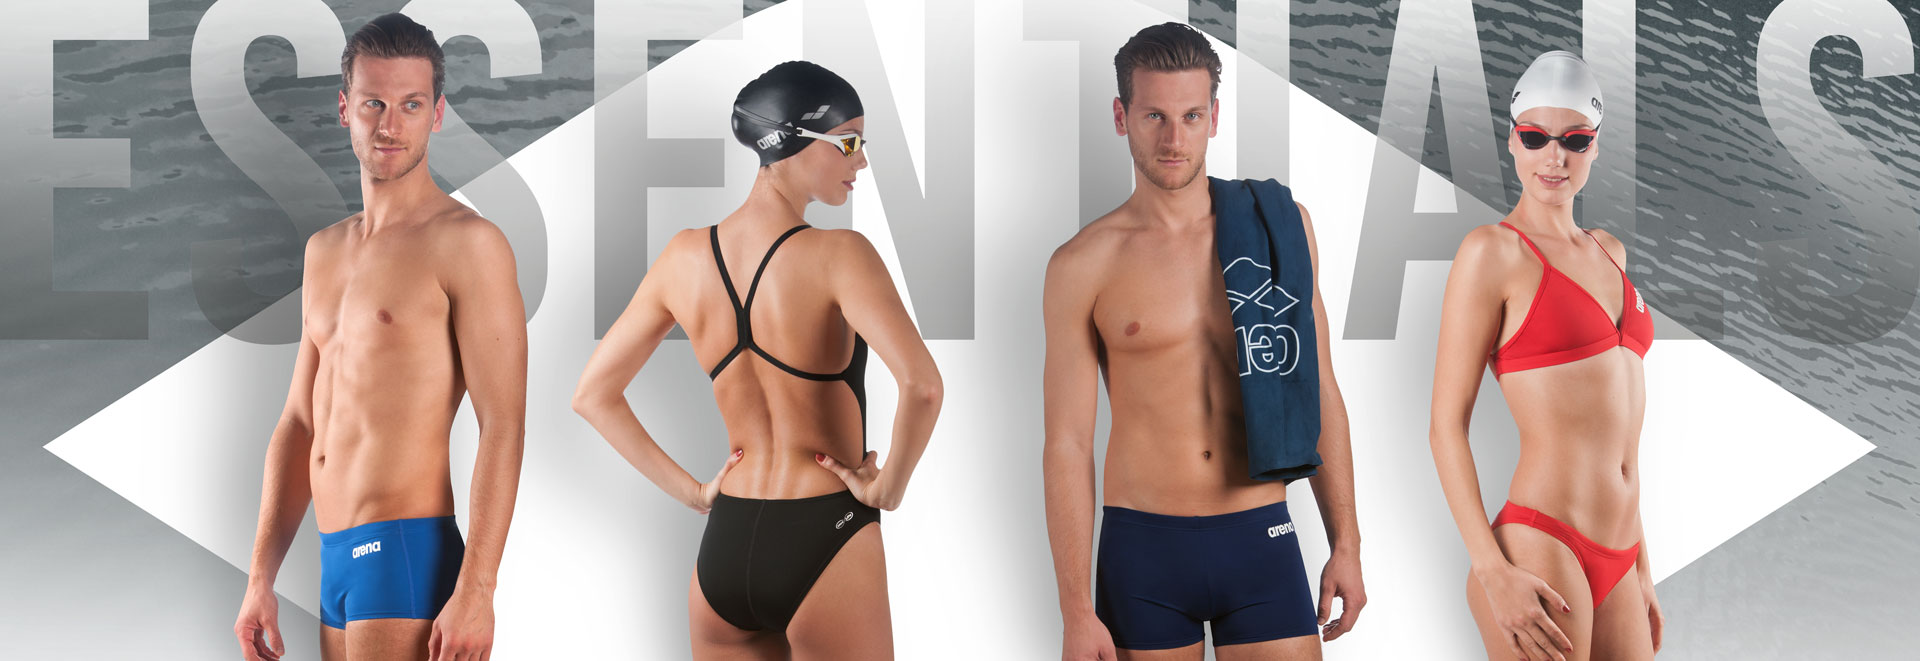 arena essentials men and women pool swimwear